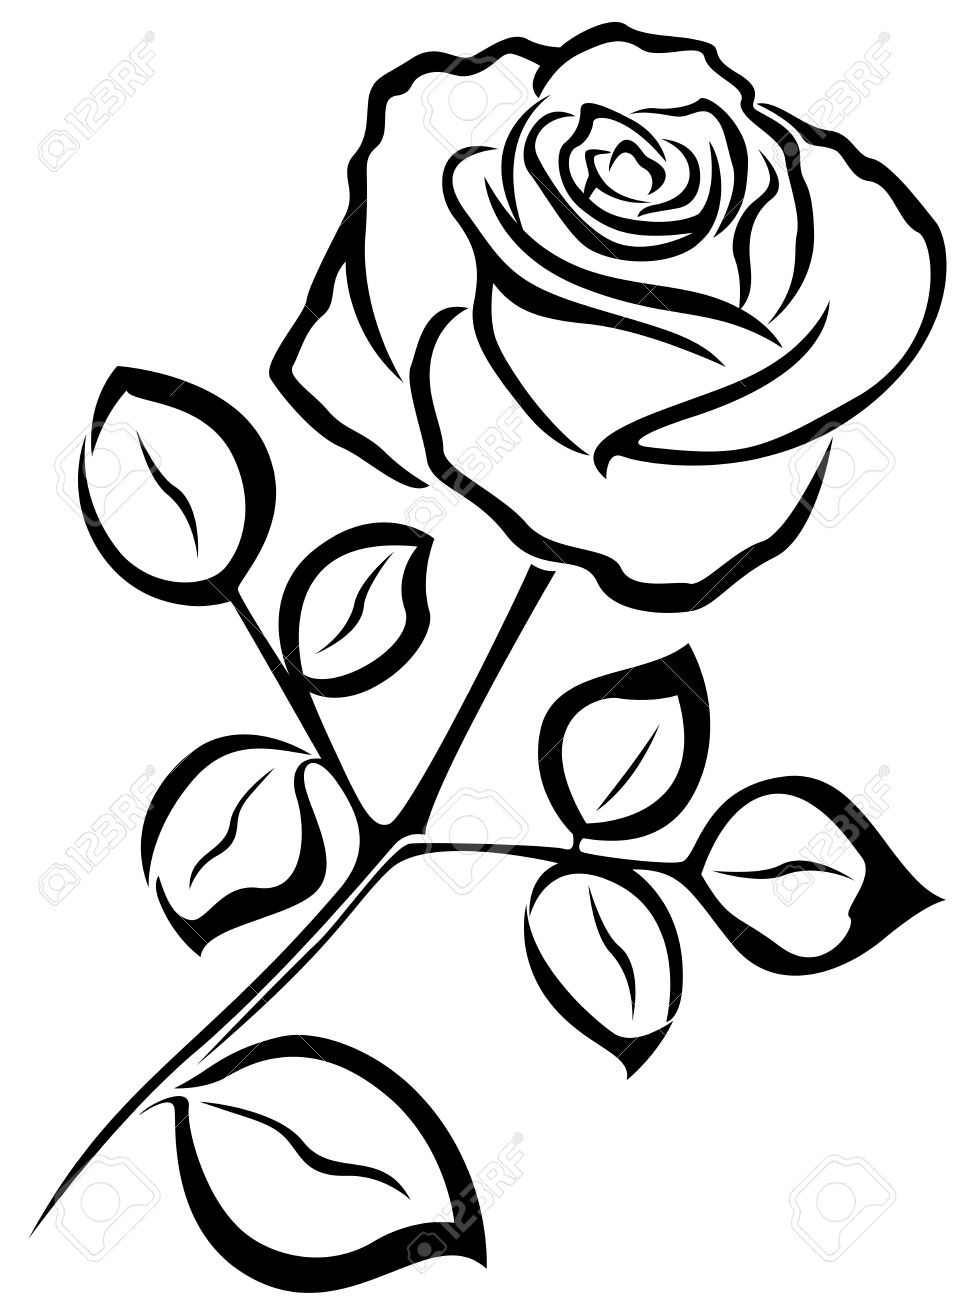 Black vector outline of single rose flower isolated on a white black vector outline of single rose flower isolated on a white background stock vector 41824880 mightylinksfo Gallery